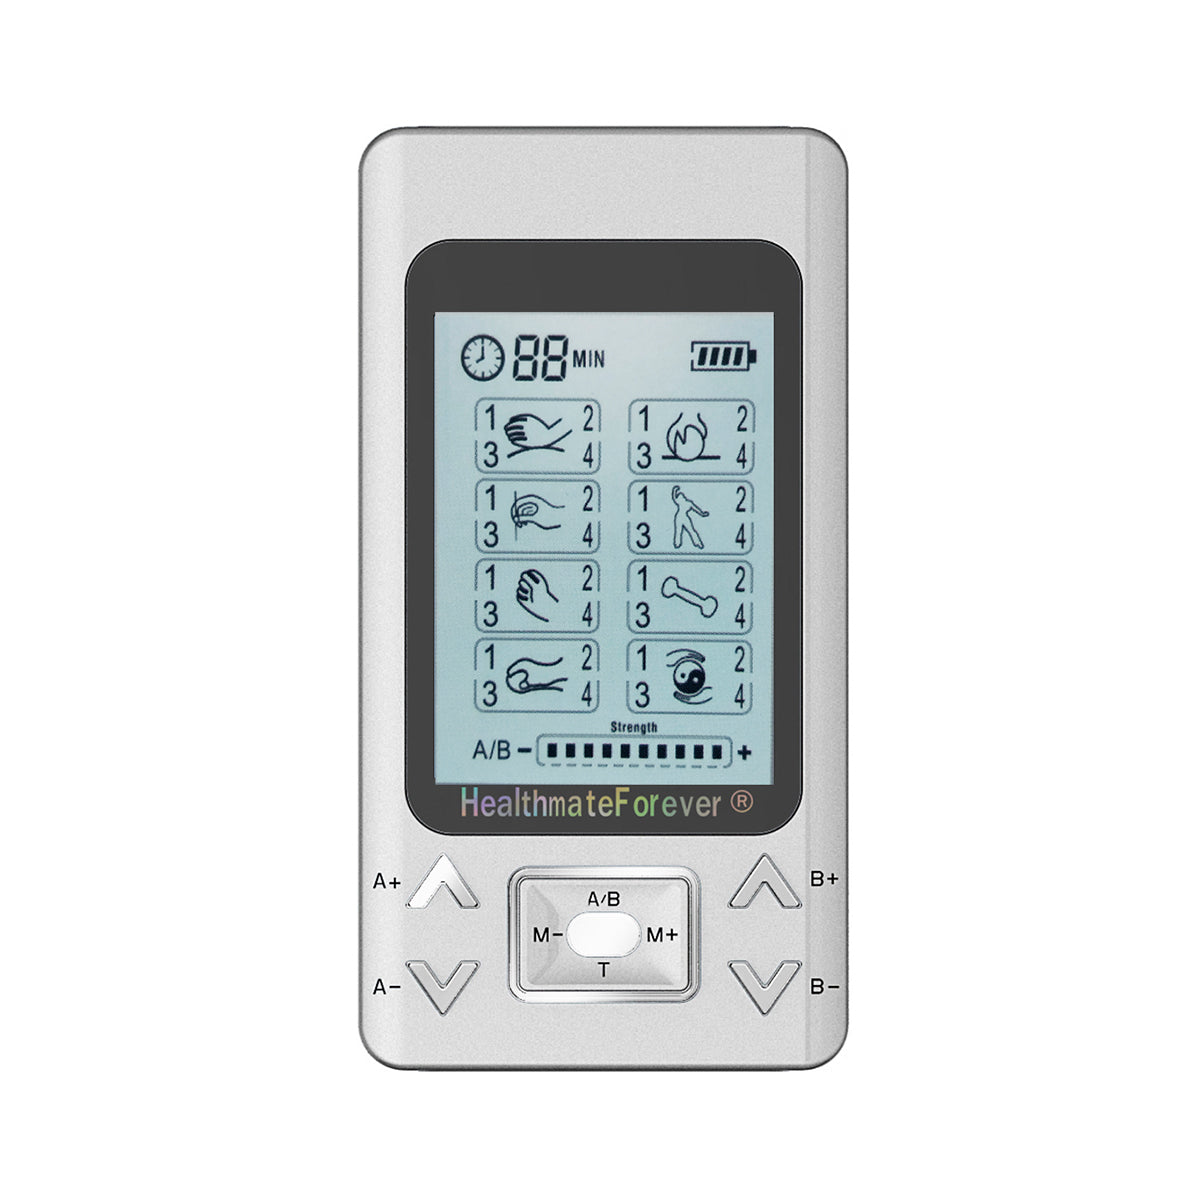 New Arrival - 2020 Version 32 Modes PRO32AB2 TENS Unit & Muscle Stimulator - HealthmateForever